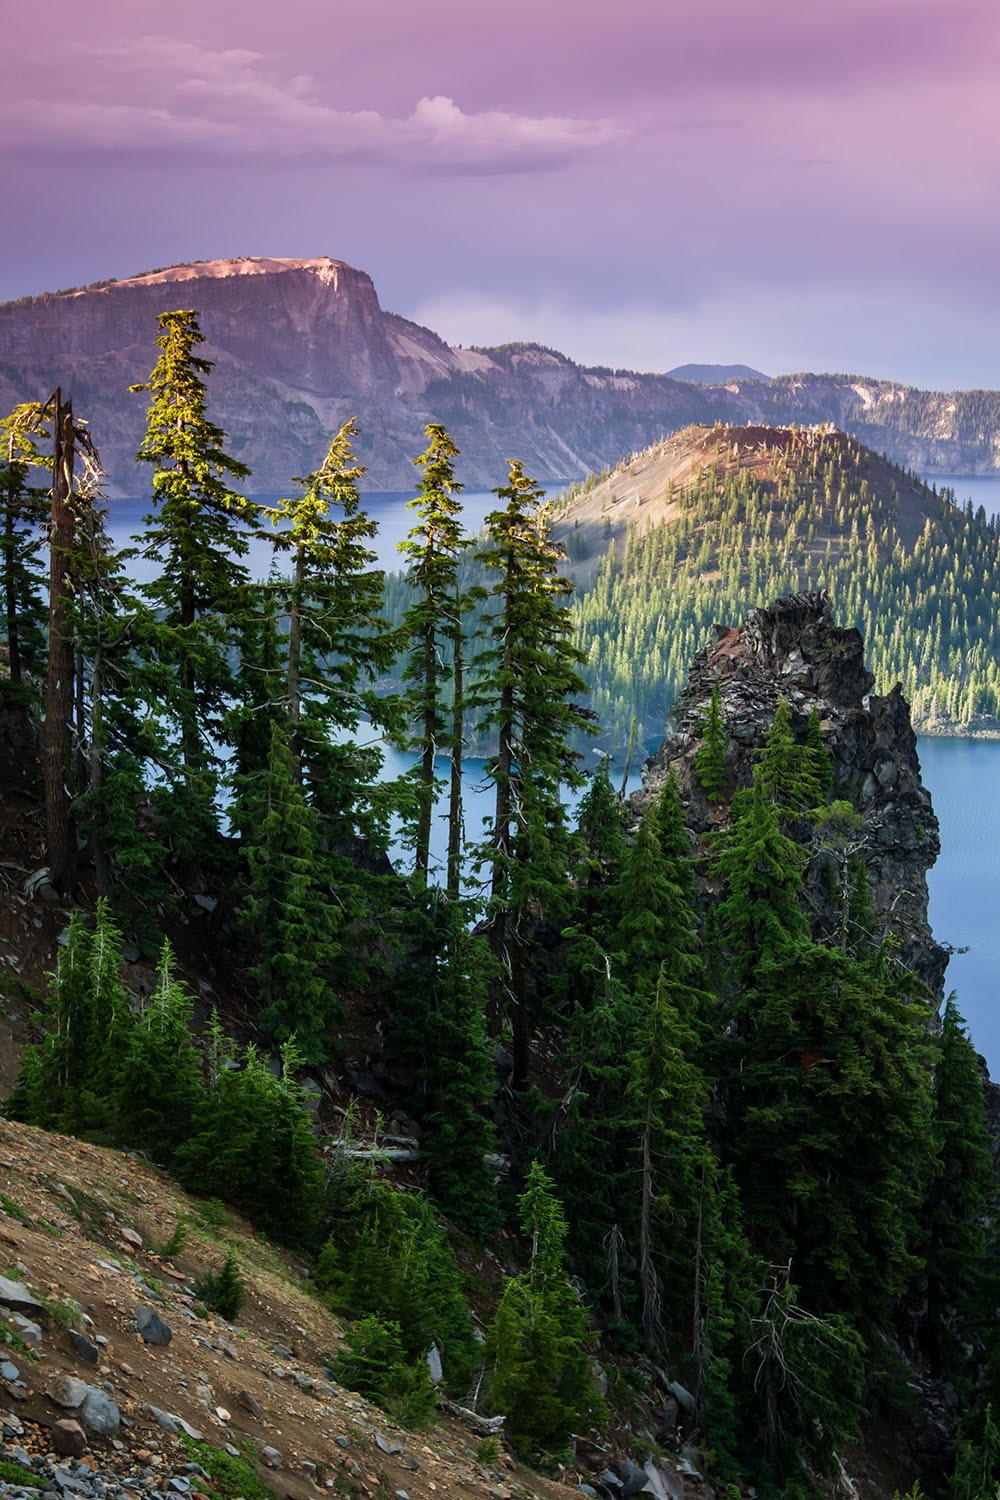 Oregon's Crater Lake National Park. Photo by Vincent James. Tweeted by the US Department of the Interior, 8/28/16.